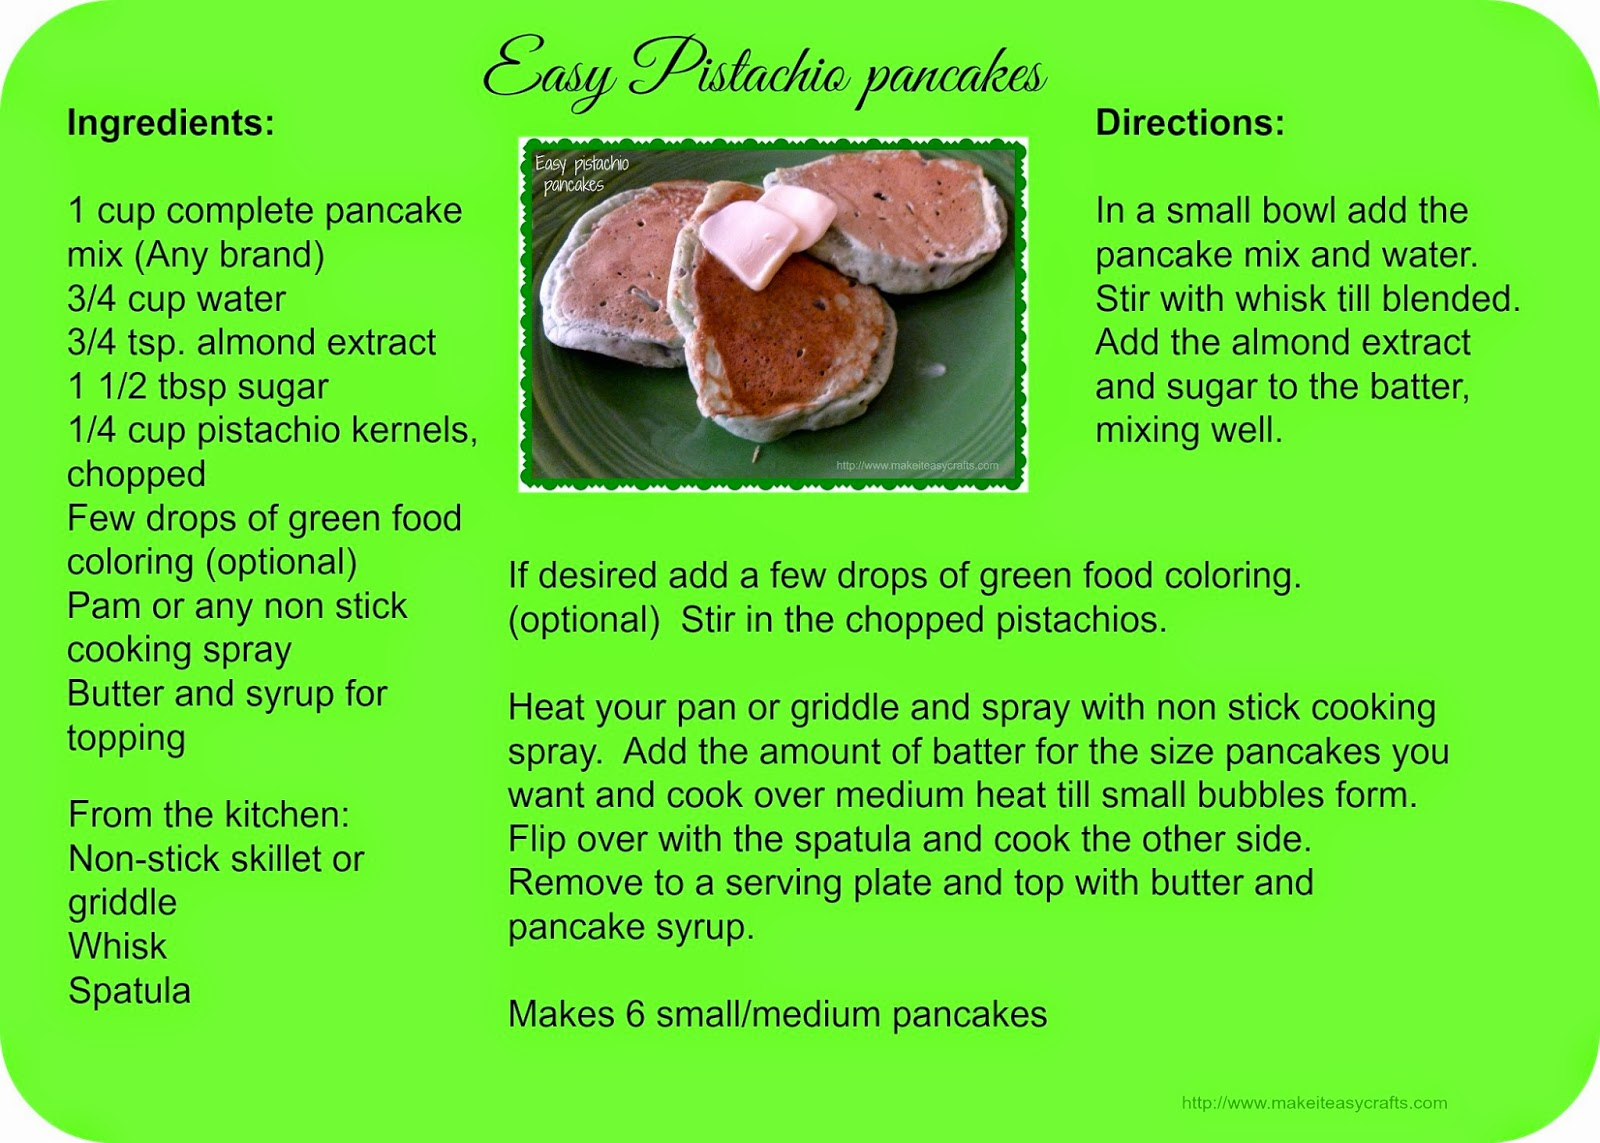 Pistachio pancake recipe card